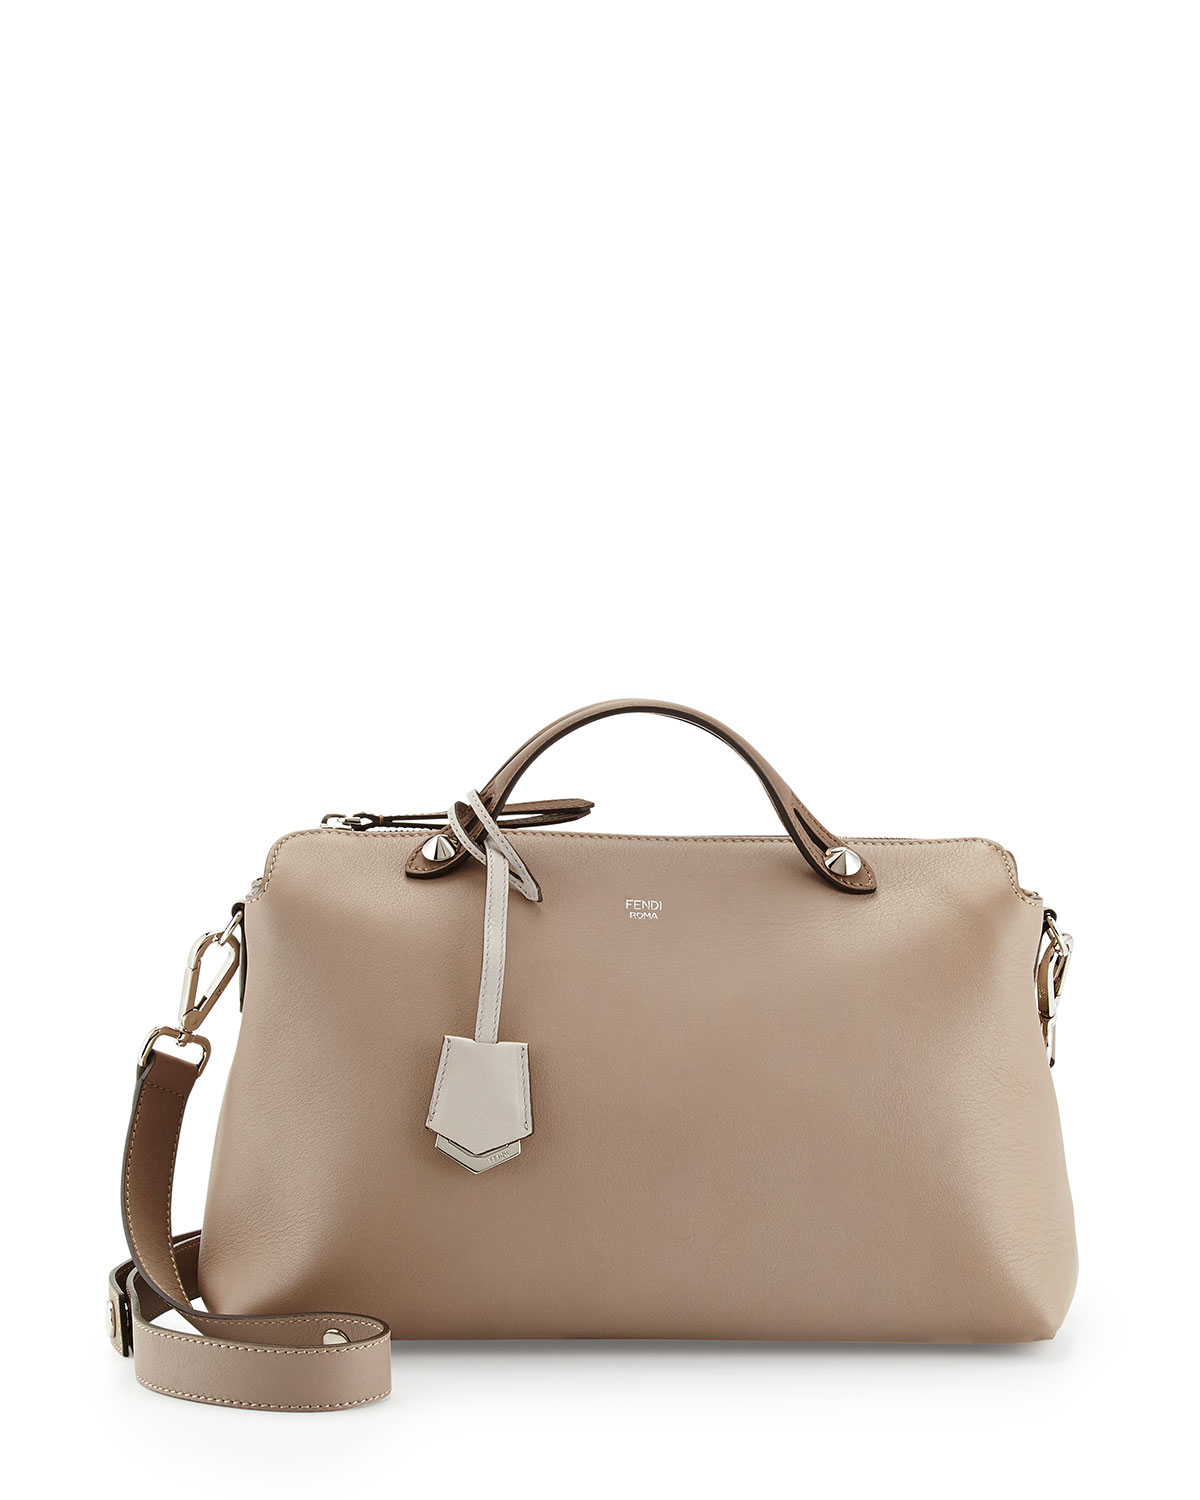 Fendi By The Way Bauletto Grande Satchel Bag in Natural